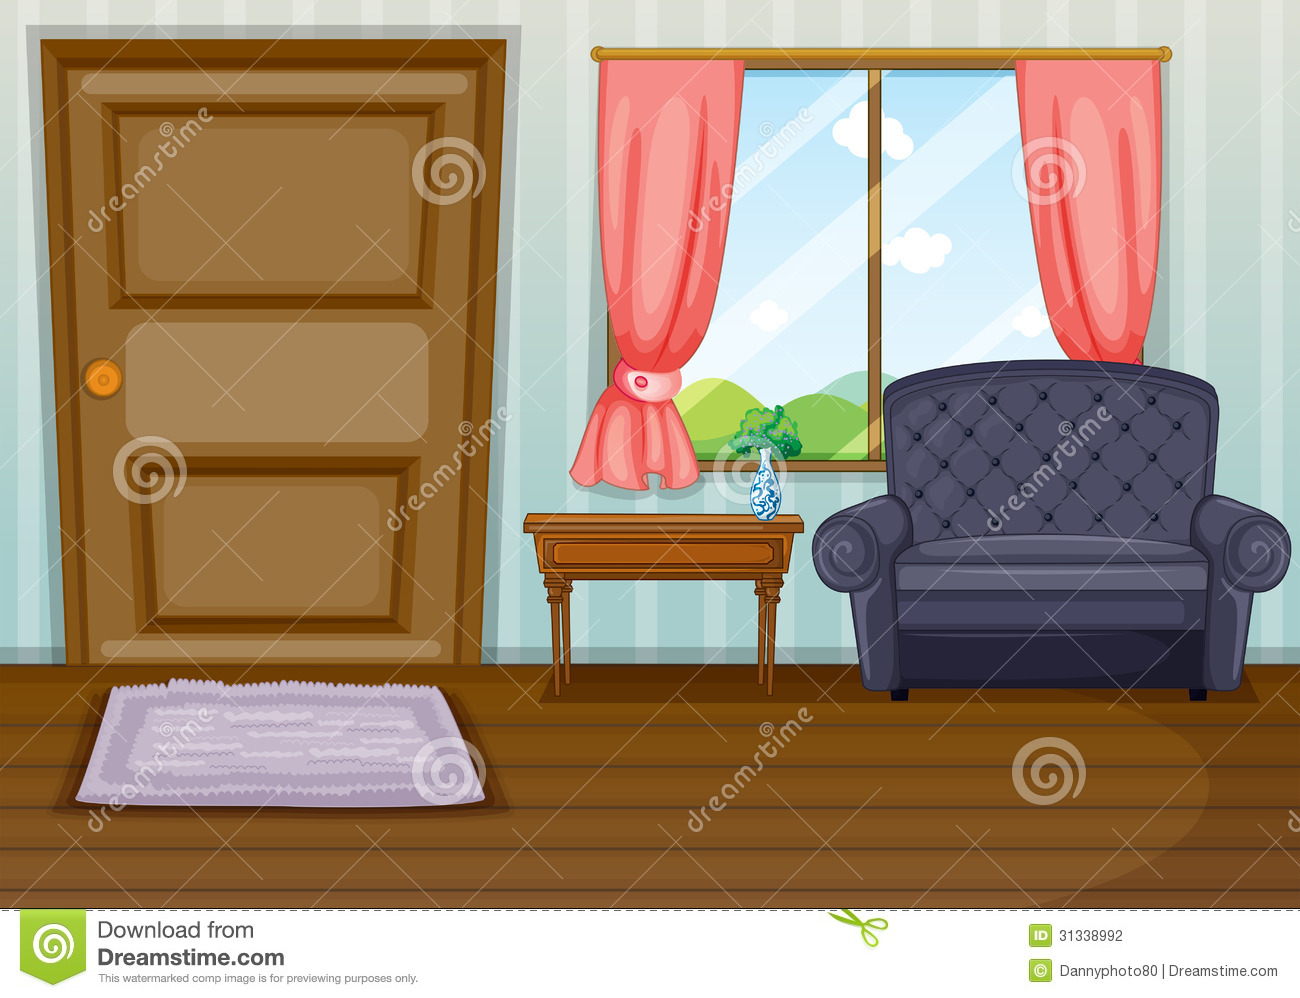 Wohnzimmer Cartoon A Clean Living Room Stock Vector Illustration Of Door